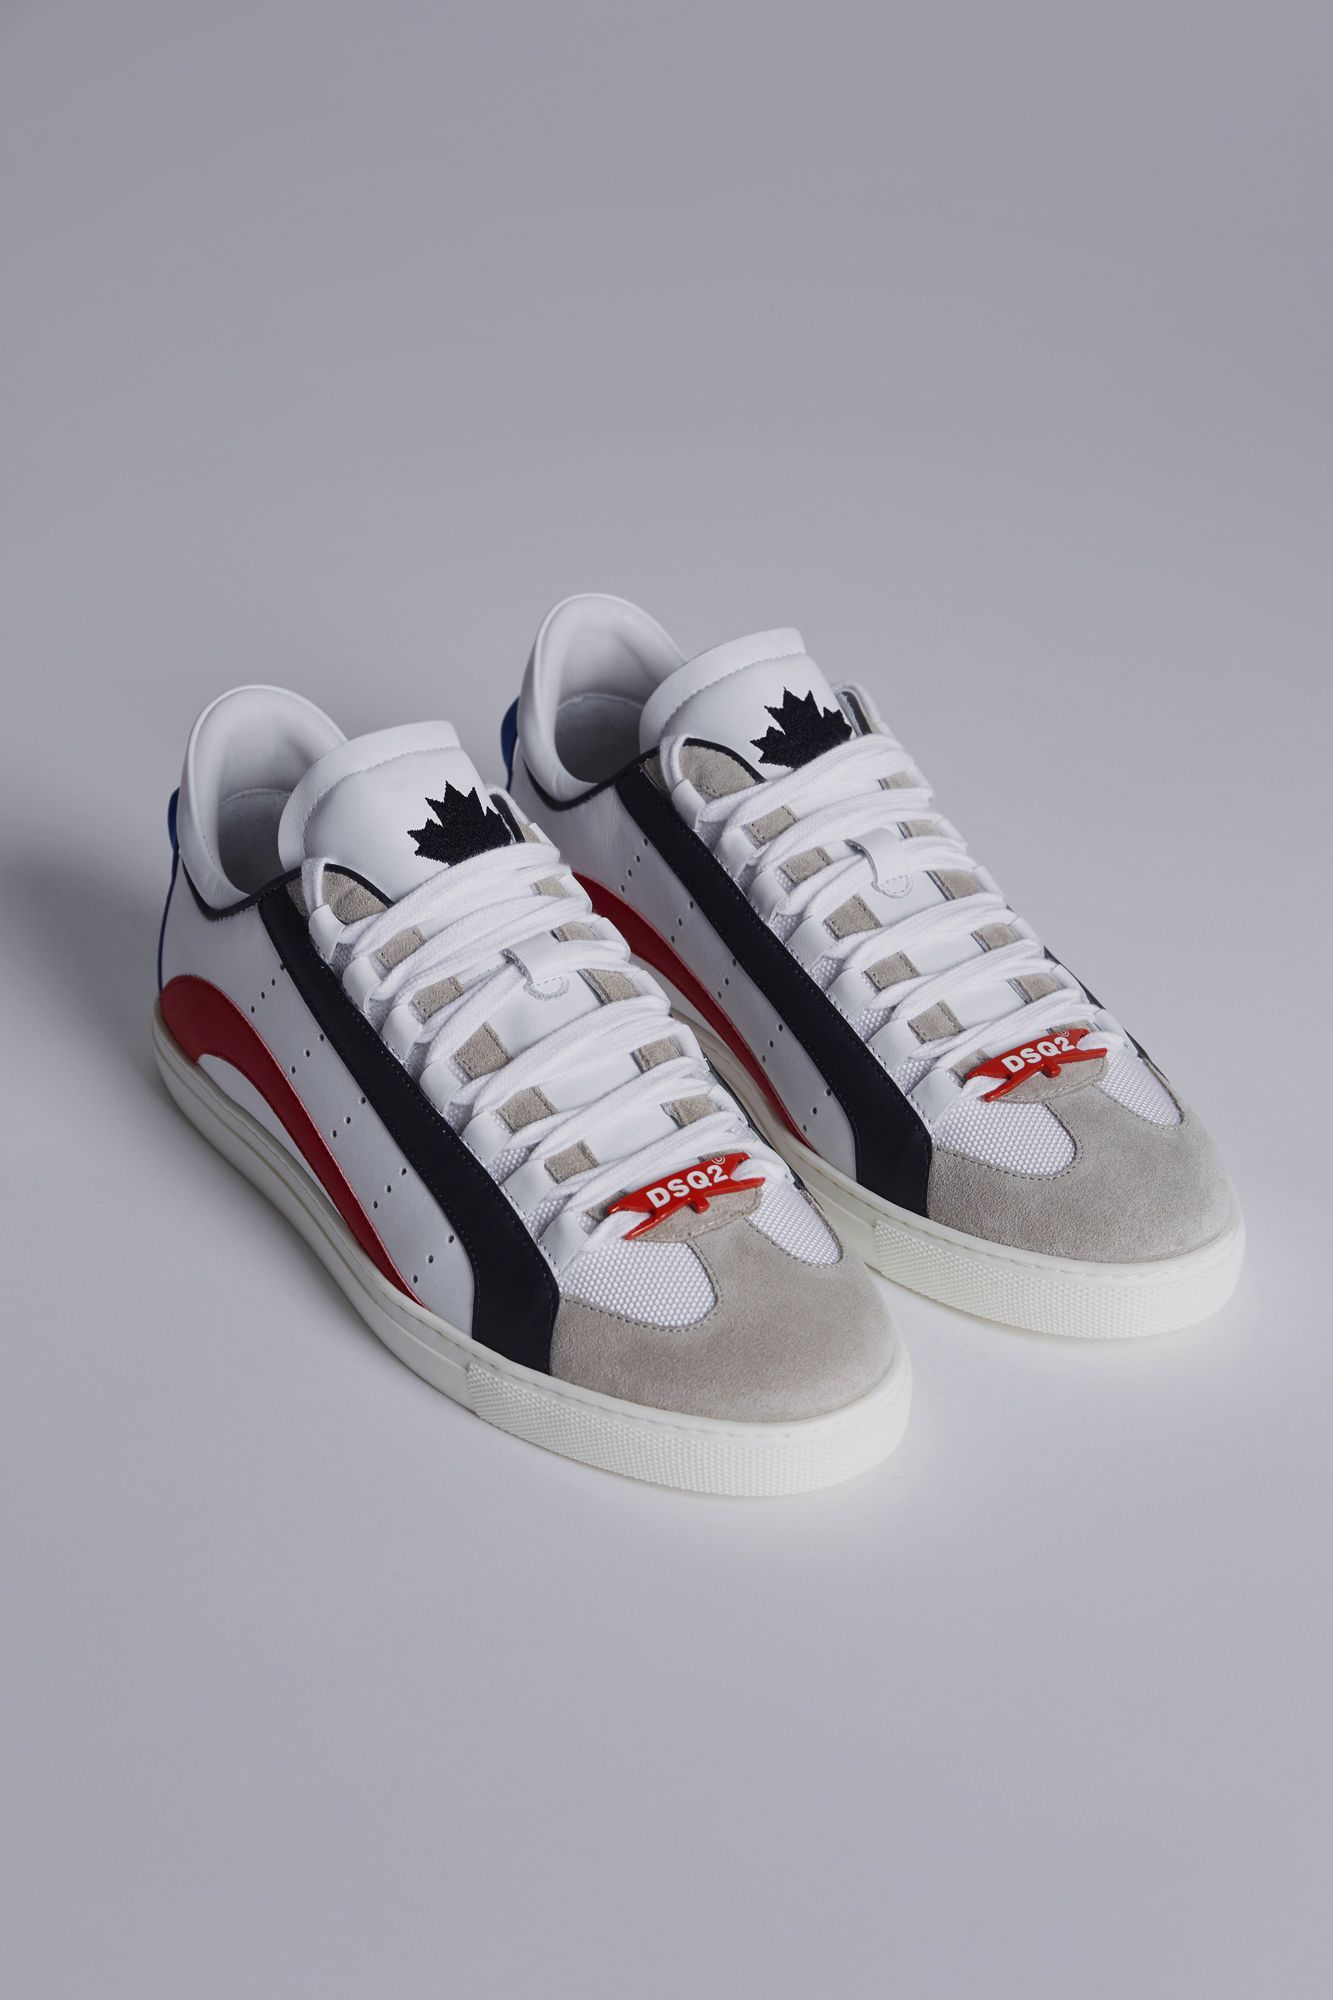 728c17f989c Dsquared2 551 Sneakers White - Sneakers for Men ...